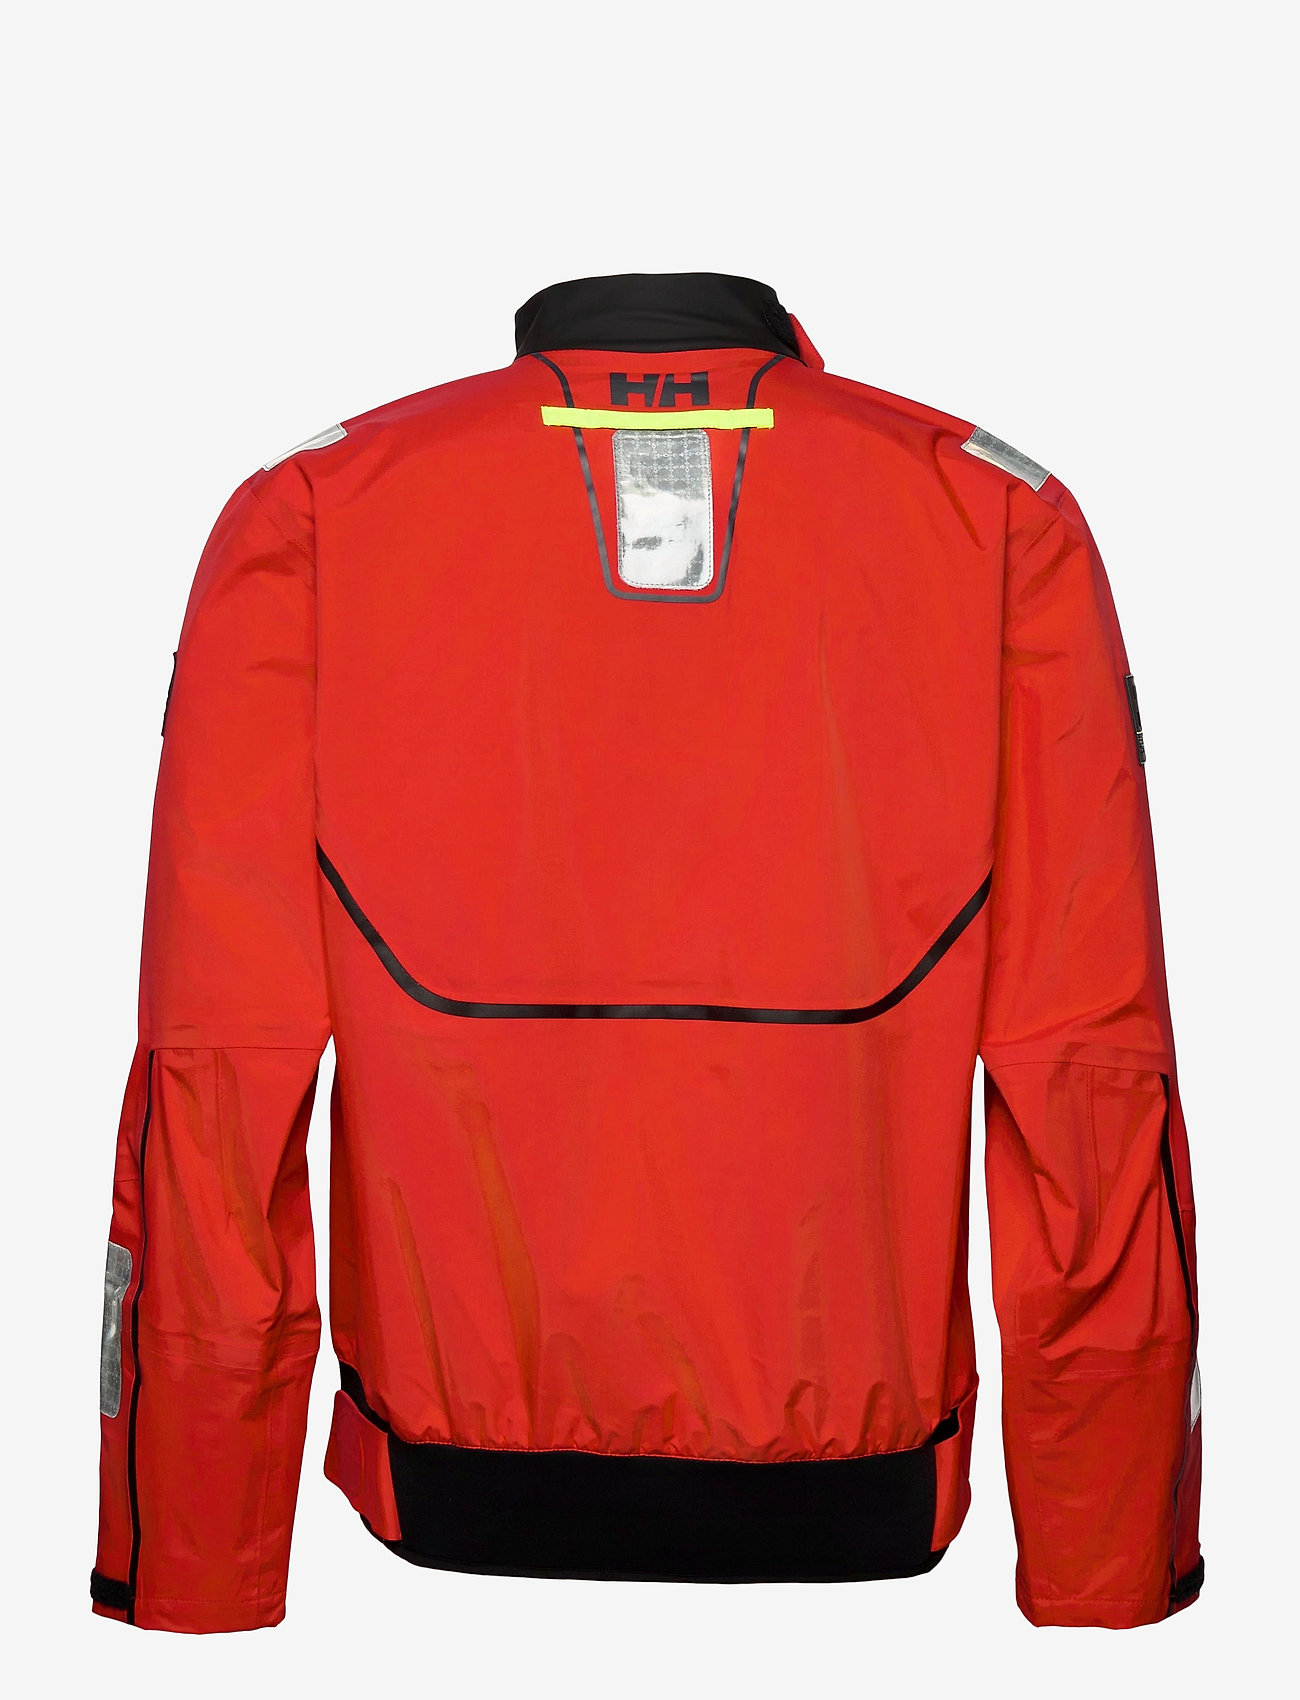 Helly Hansen - HP FOIL SMOCK TOP - ulkoilu- & sadetakit - alert red - 1